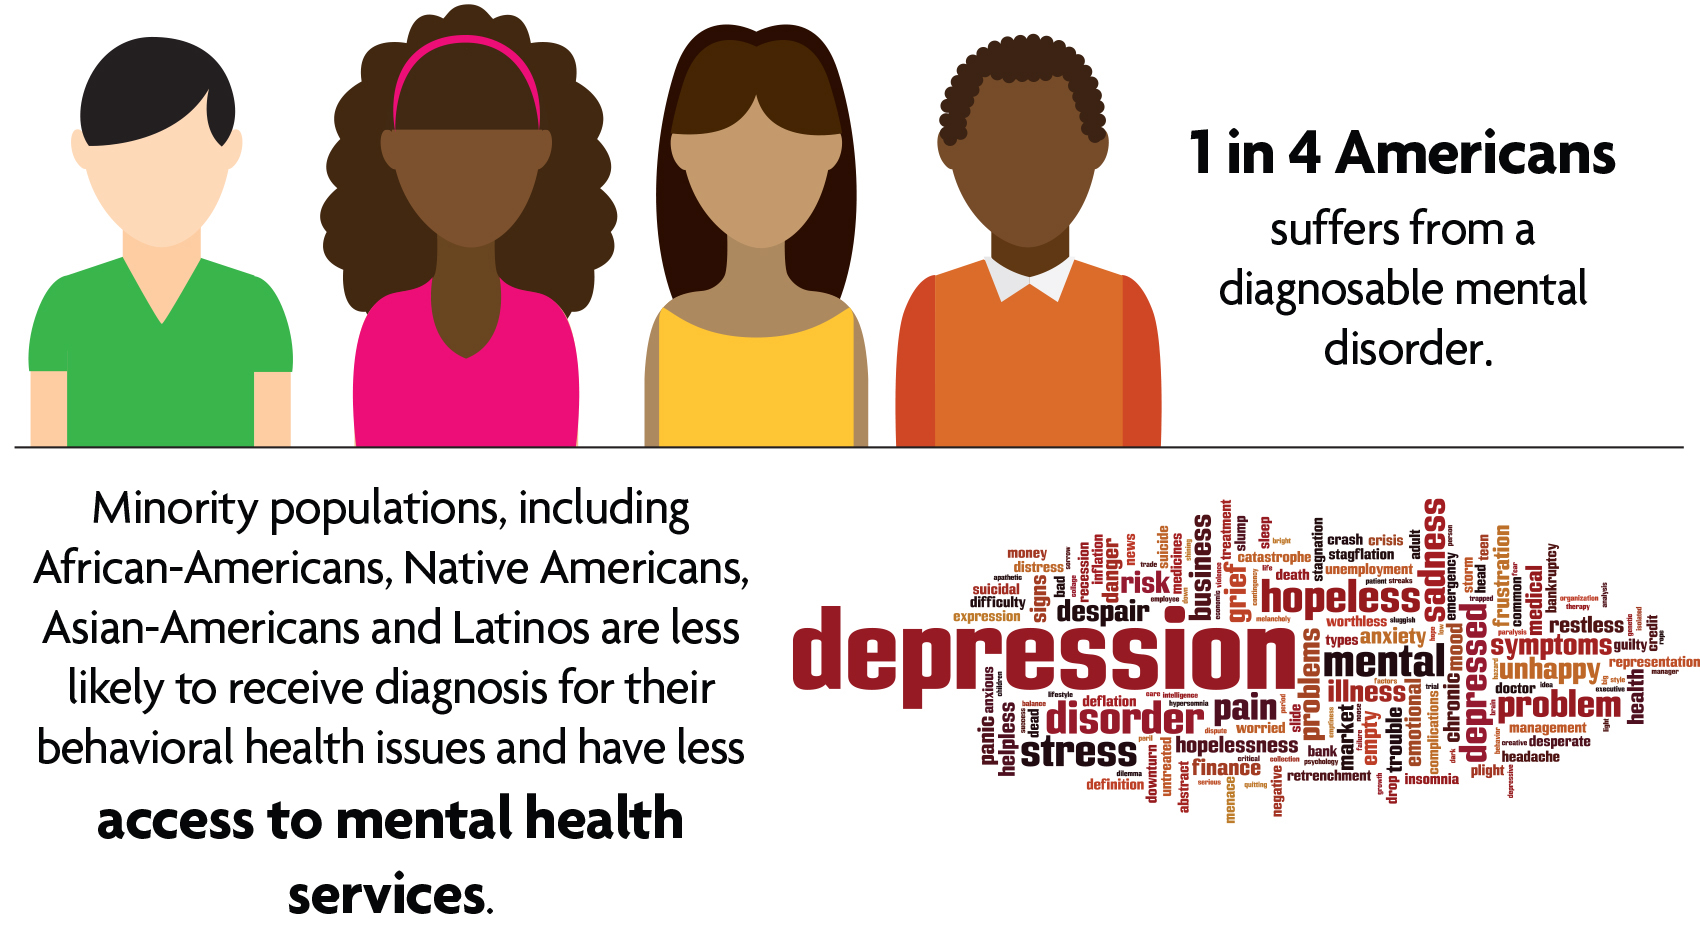 health issues concerning african american population Top health concerns and disparities facing african americans serious health problems the african american top health concern for african americans.